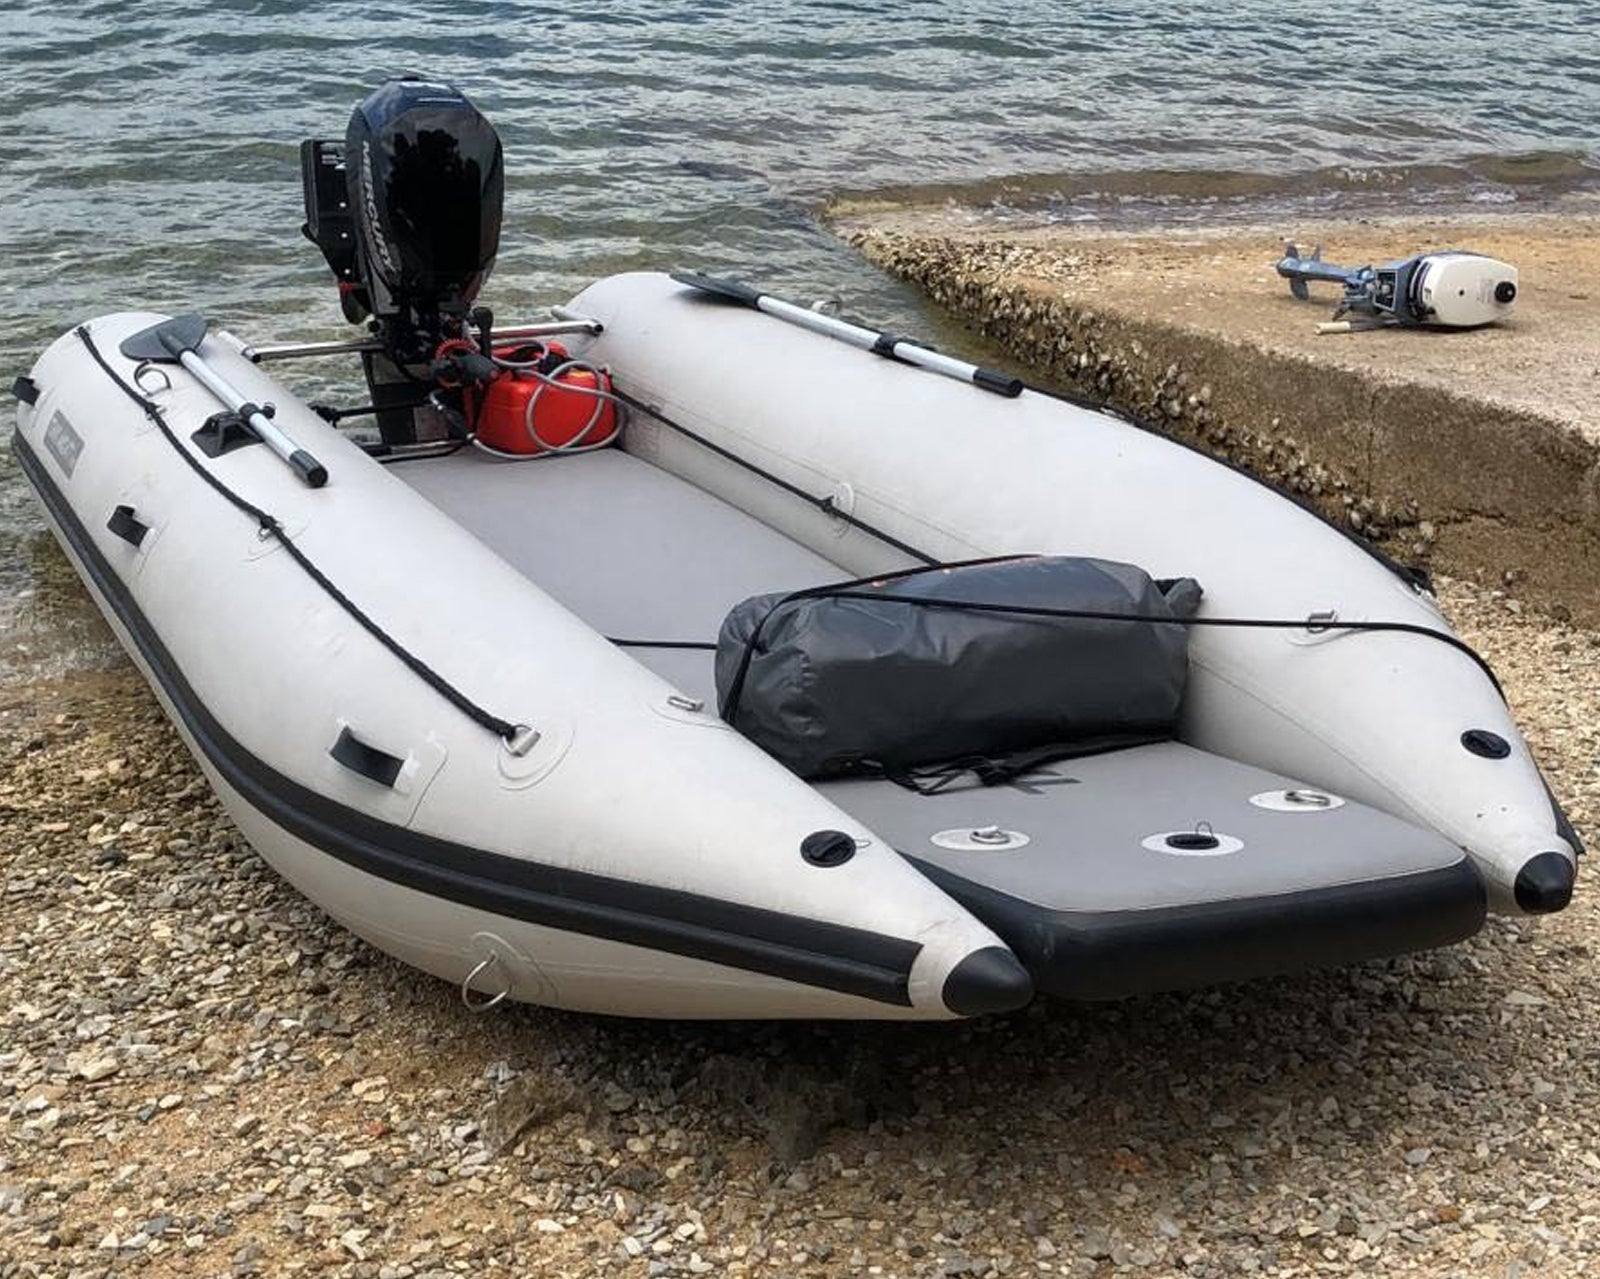 Takacat 420 LX Portable Inflatable Boat